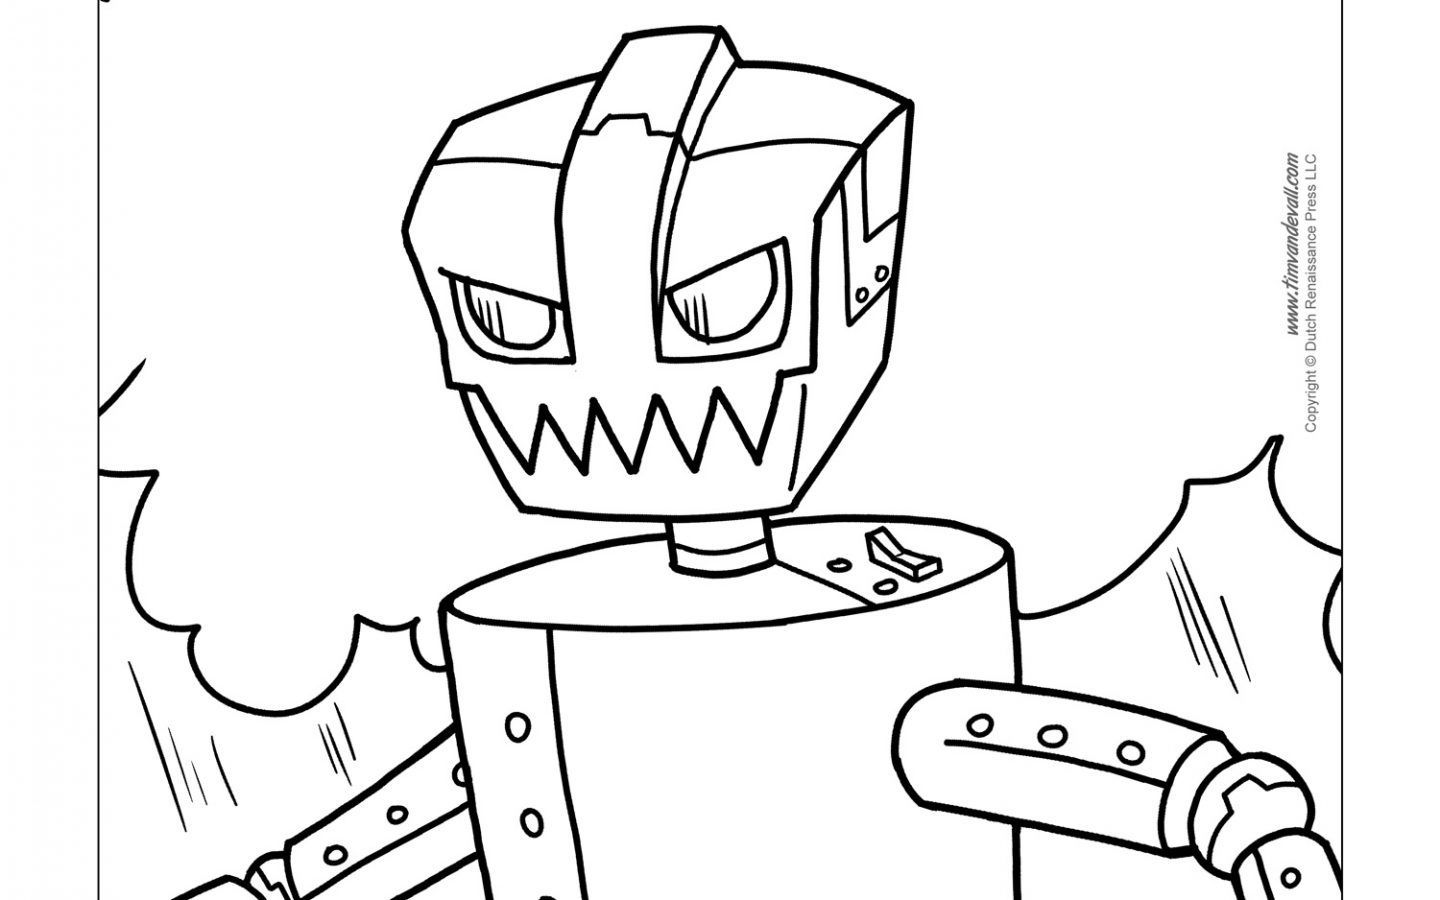 1440x900 Inspiring Robot Coloring Pages For Adult Best Image Printable Kids